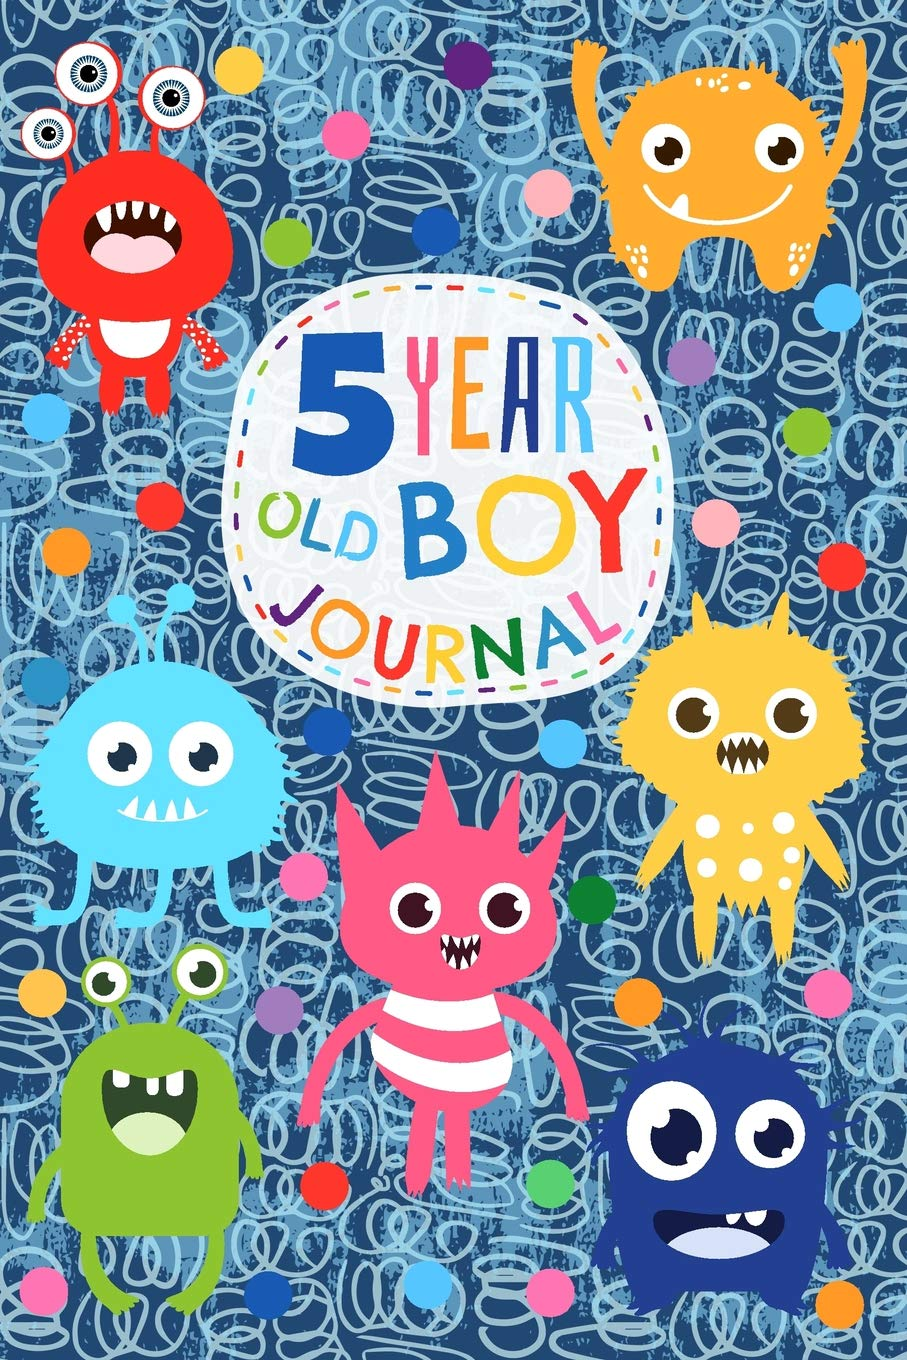 5 Year Old Boy Journal Cute And Funny Monster Creatures Happy